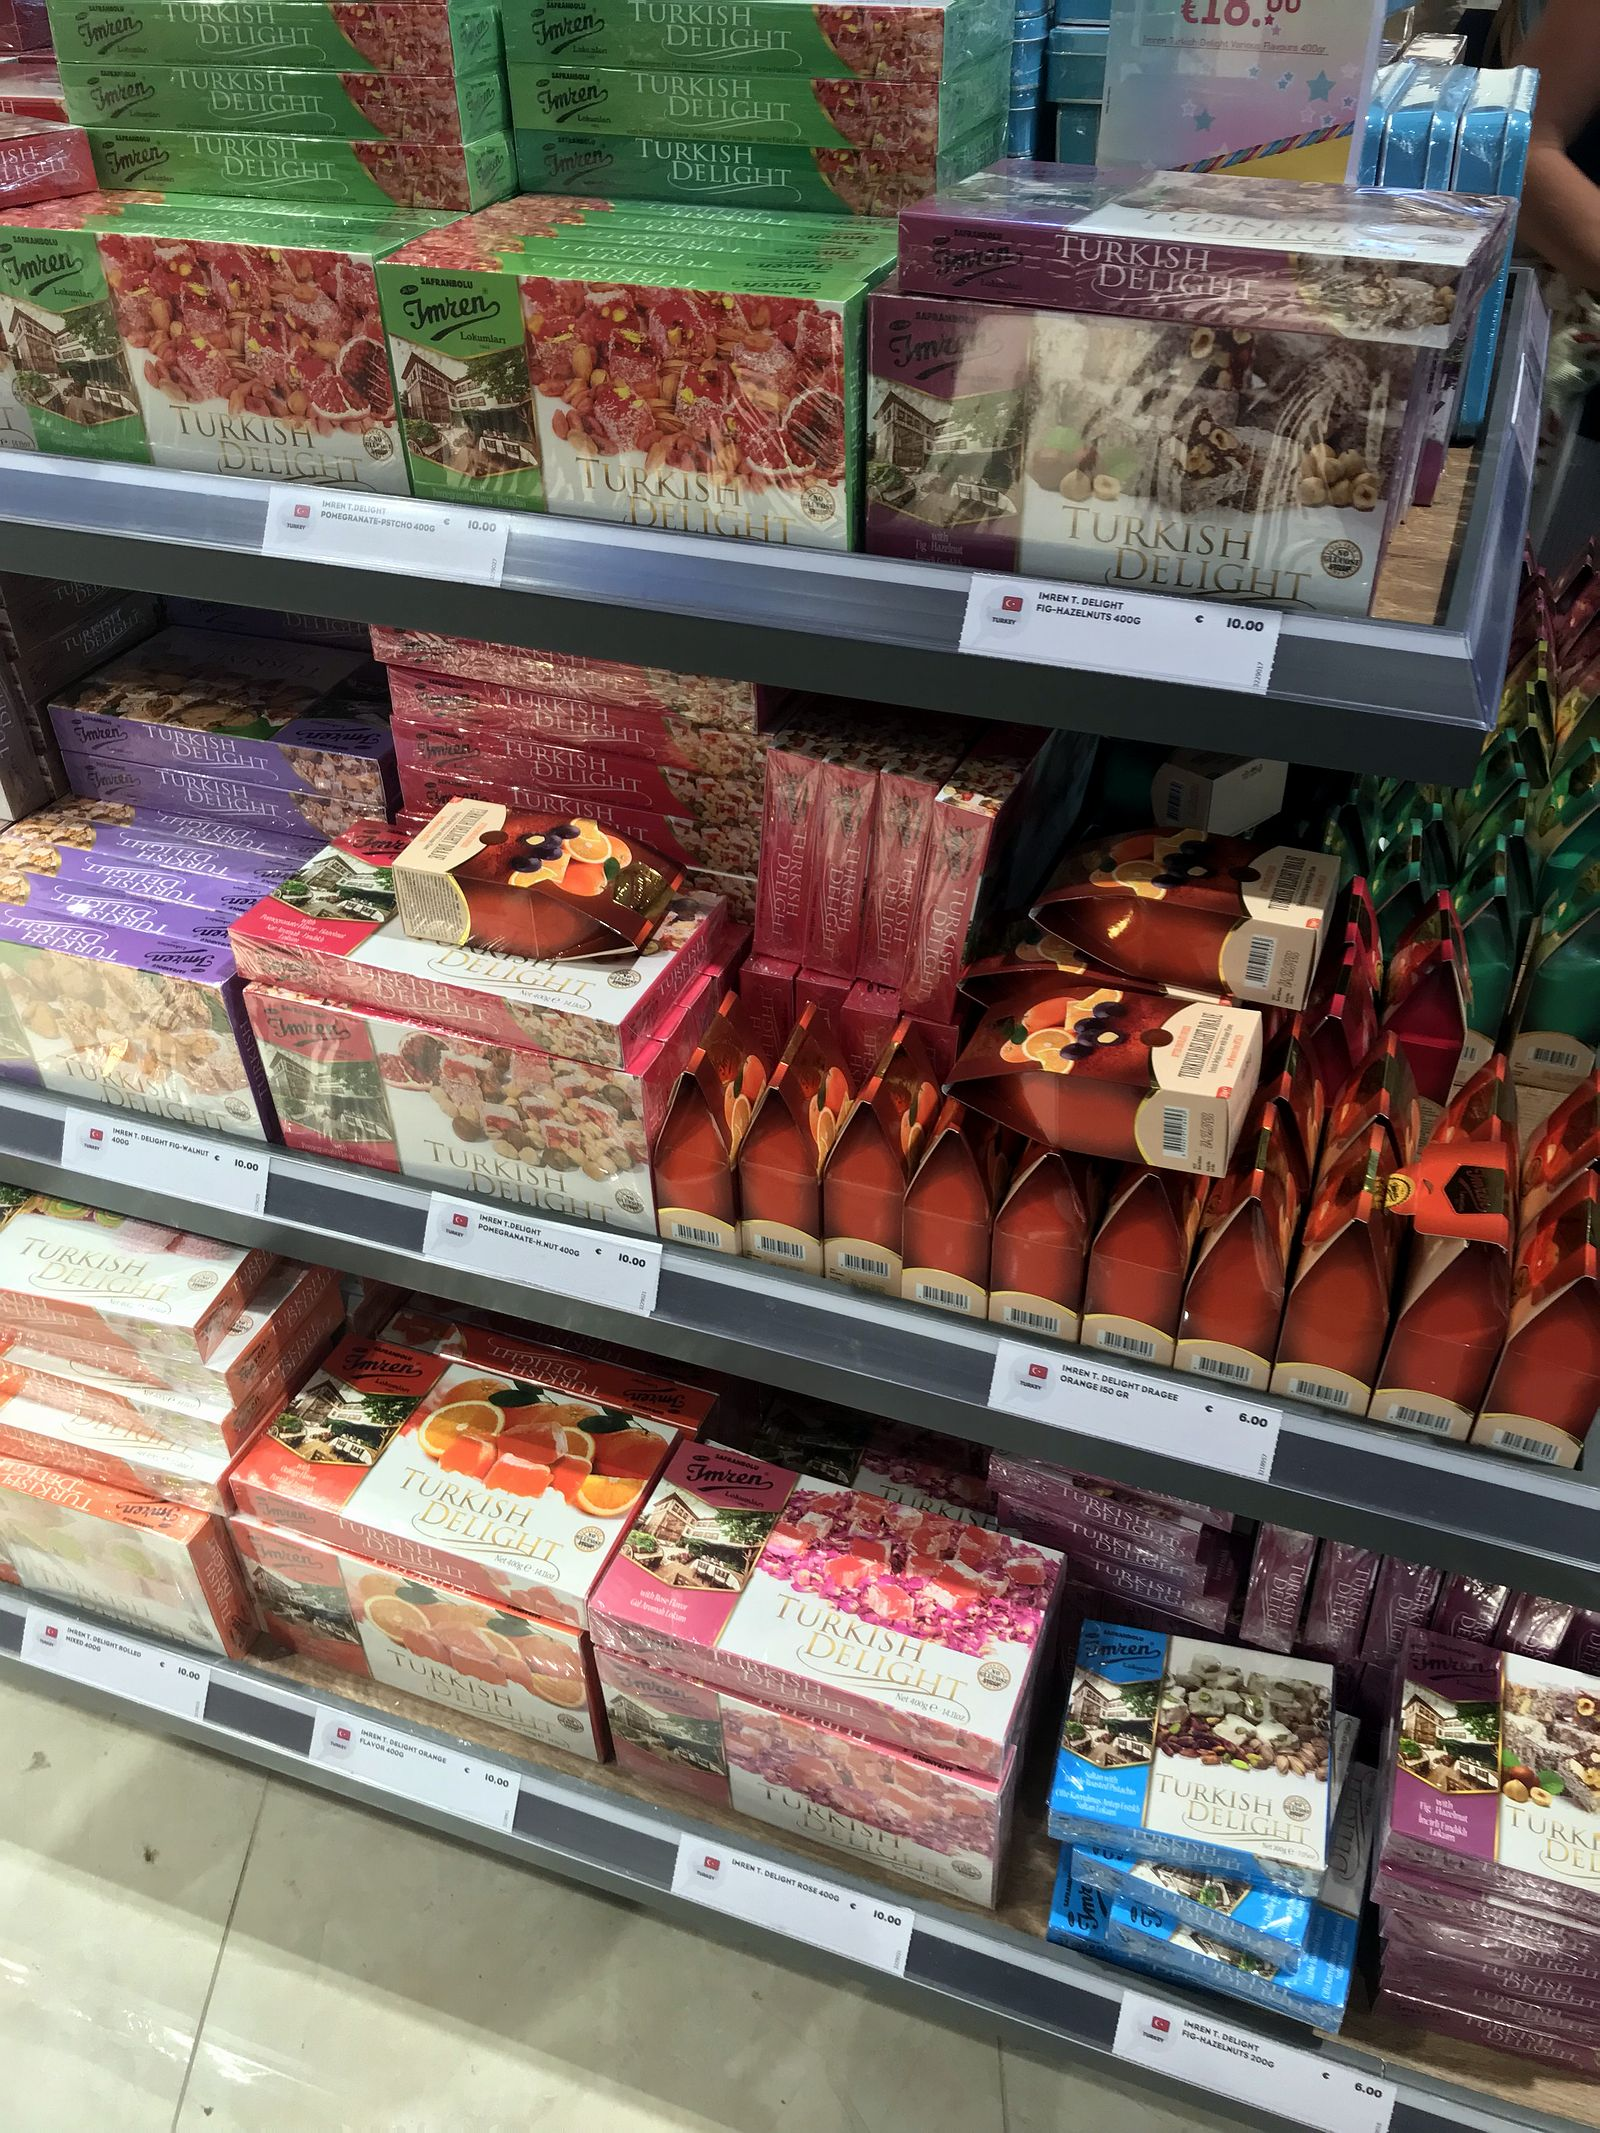 Duty free Antalya, august 2019, turkish delight